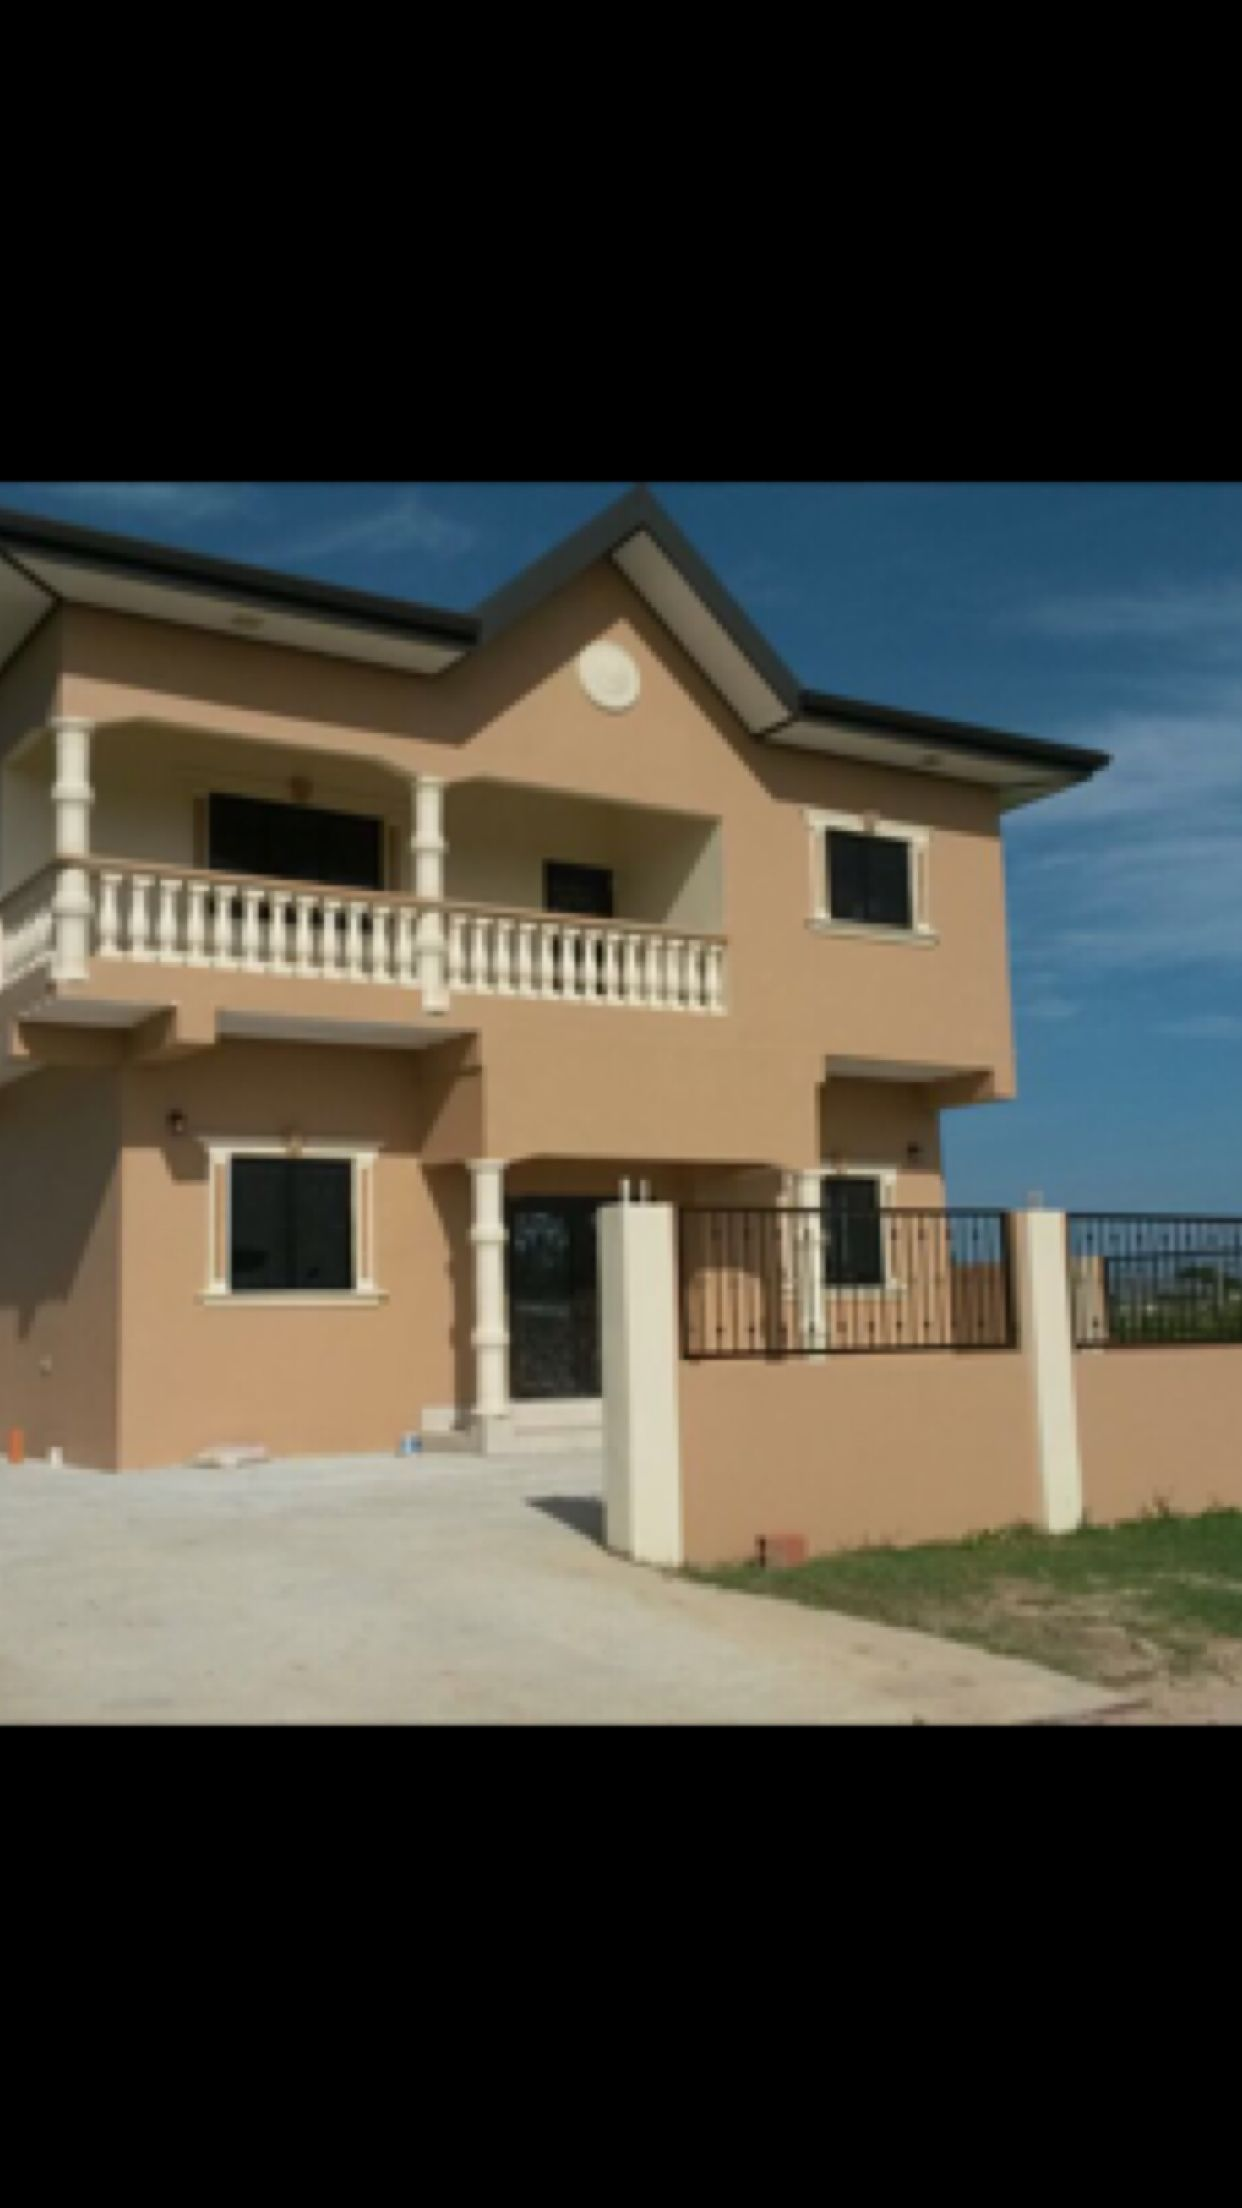 Split Level House For Sale Couva 2 2 Mill 762 4675 For More Information Split Level House House Styles House